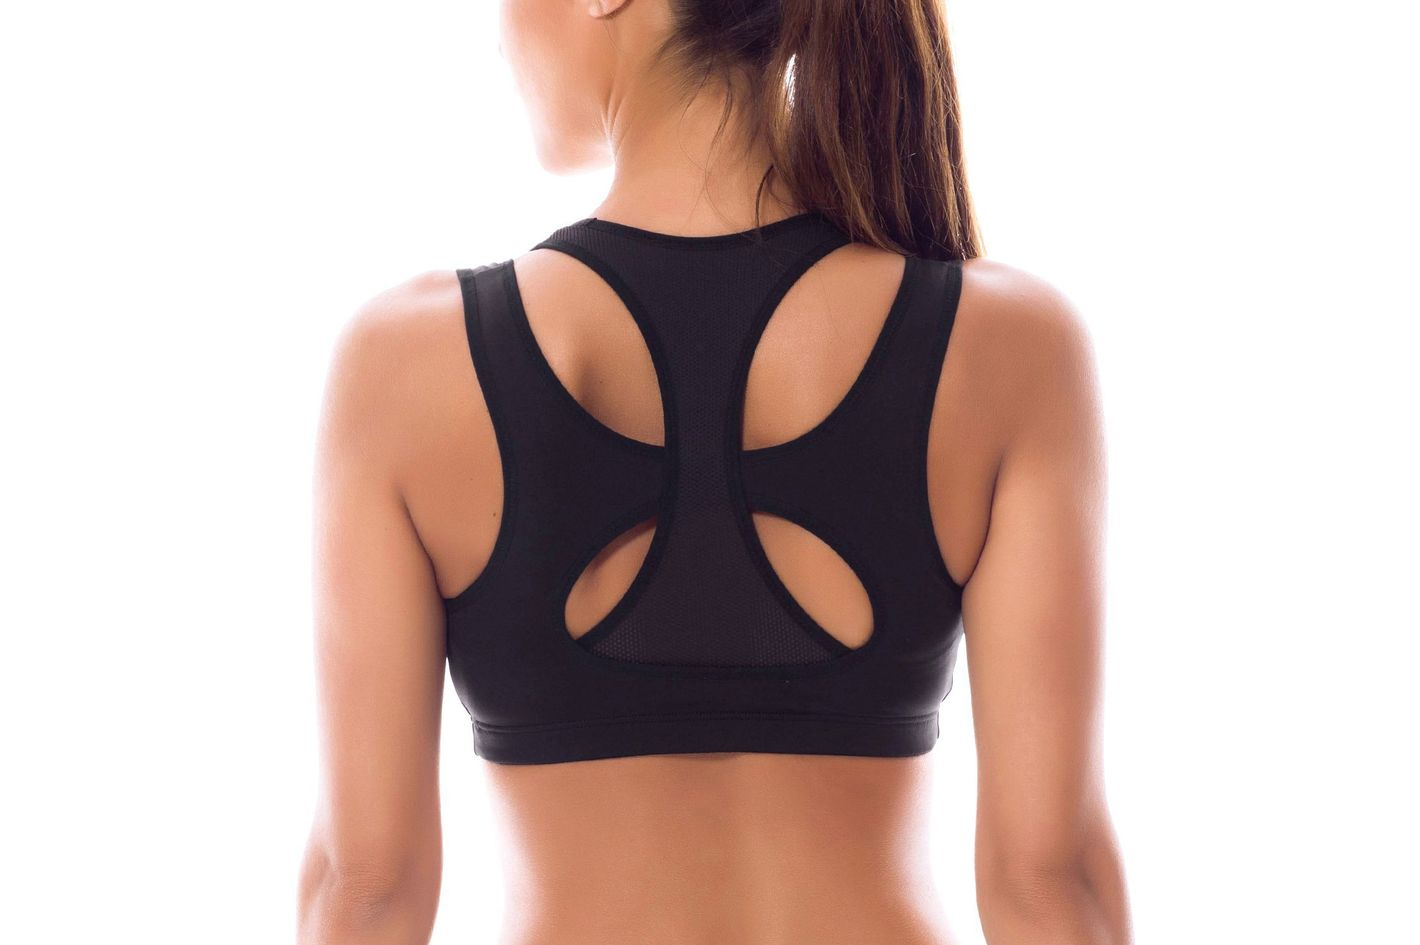 d1667aa8572 SYROKAN Women s High Impact Support Wirefree Workout Racerback Sports Bra  Top